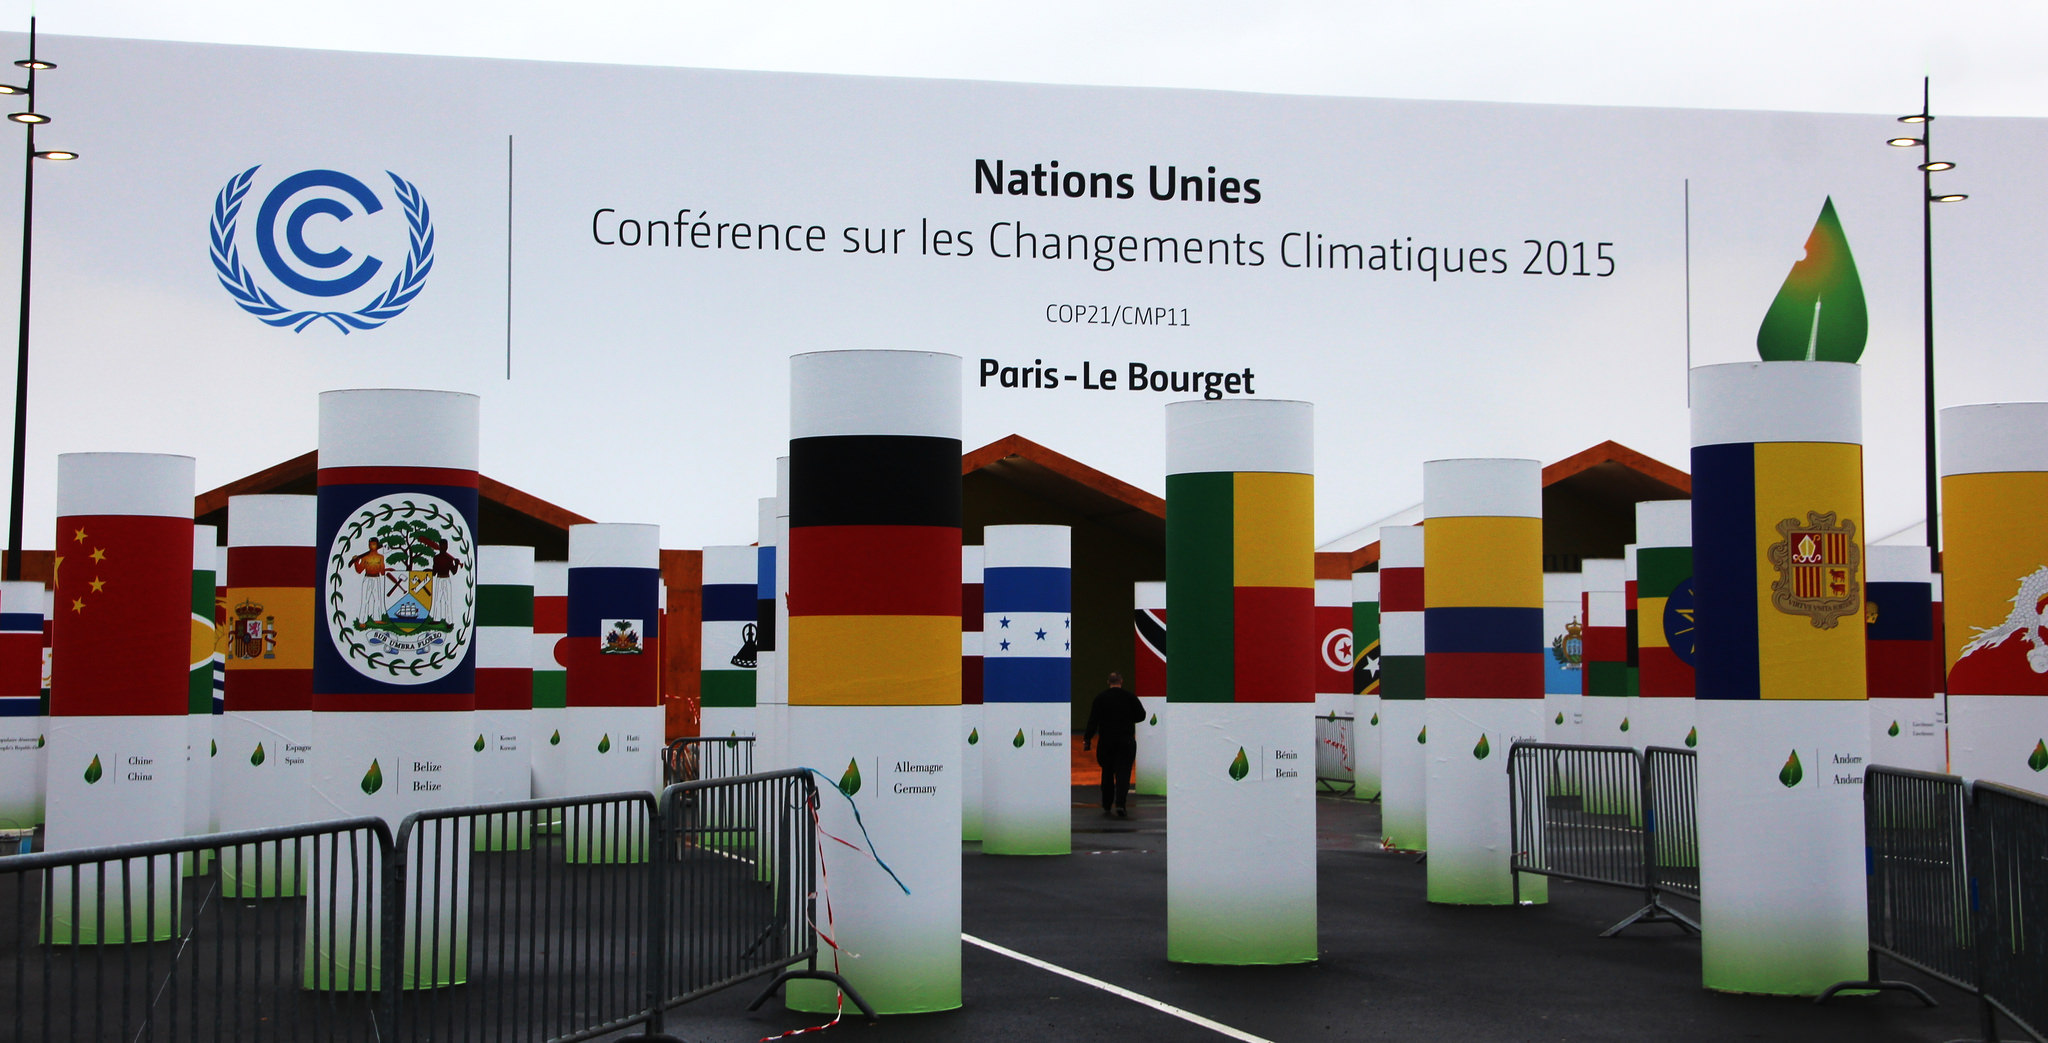 Entrance to Le Bourget UN climate Conference COP21, by Flickr user Takver, CC BY-SA 2.0.